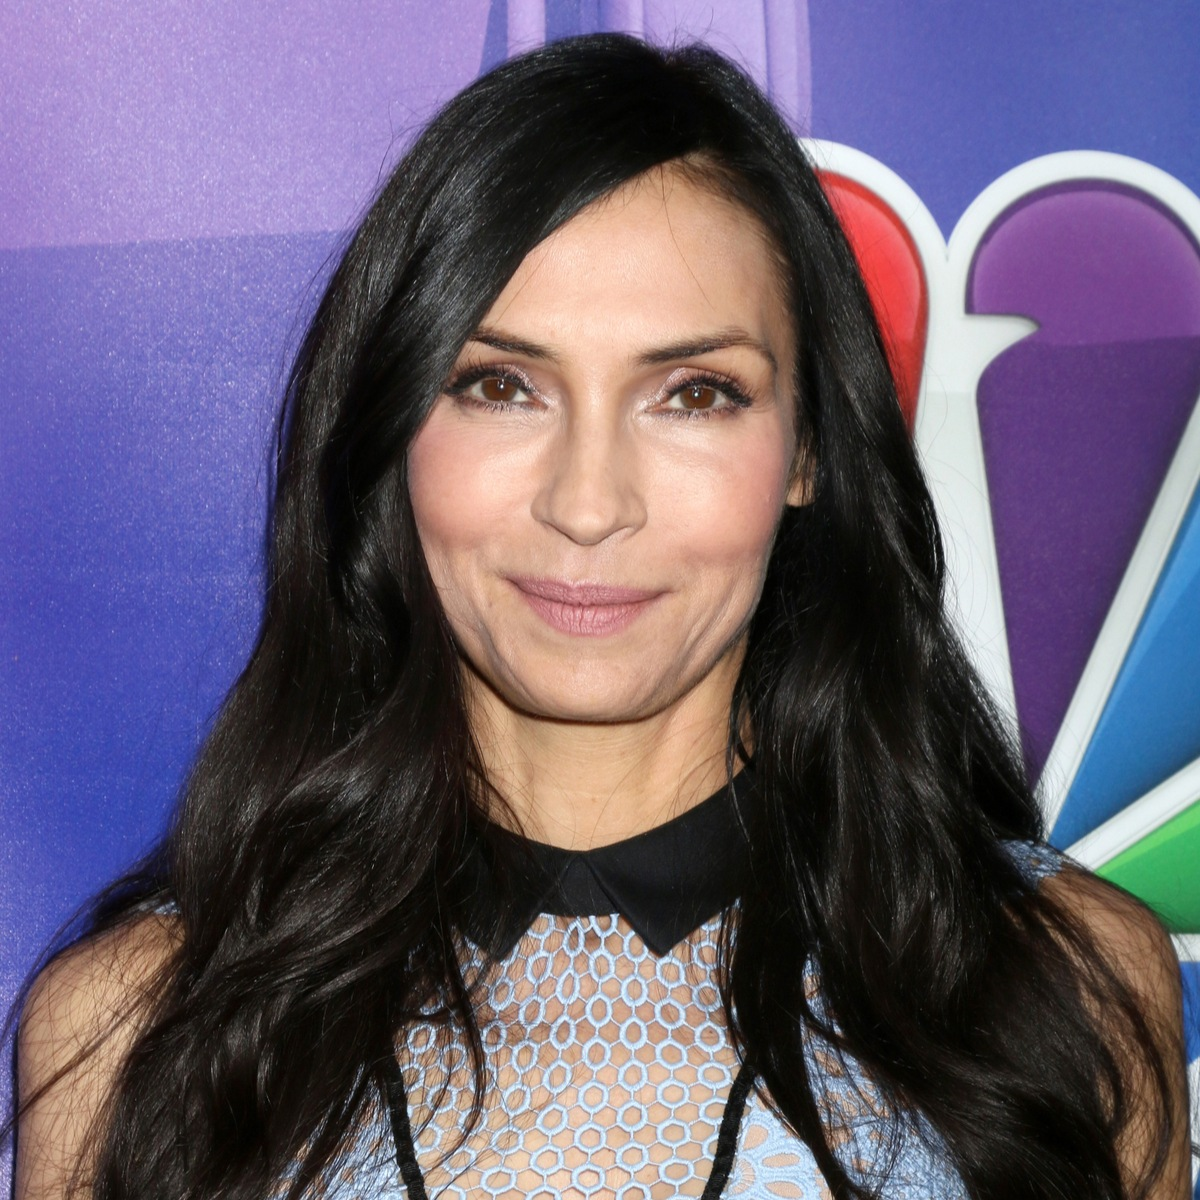 Famke Janssen at the NBC/Universal TCA Winter 2017 at Langham Hotel on January 18, 2017 in Pasadena, CA (Kathy Hutchins/Shutterstock)